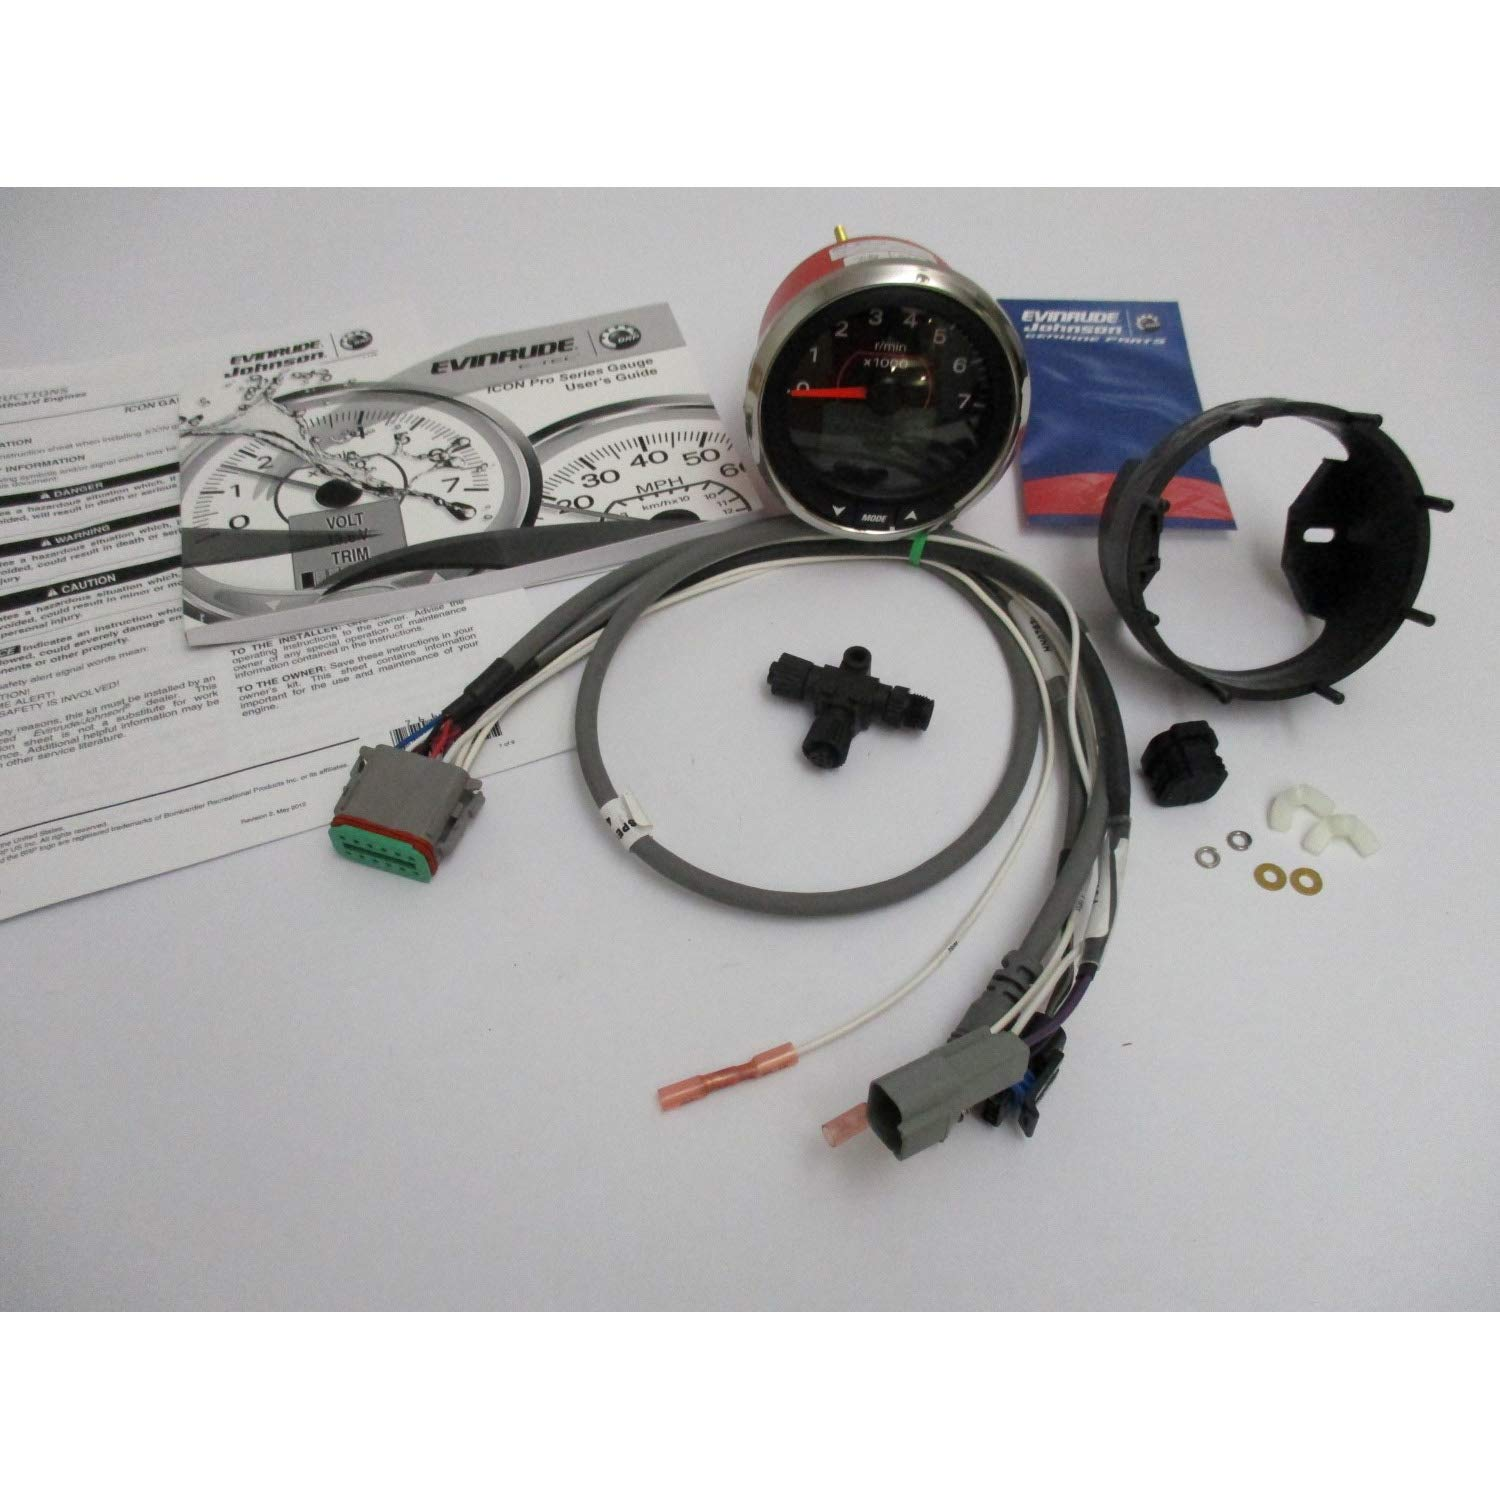 Evinrude Etec New Icon Tach Pro Tachometer Kit 4'' Black 7000 RPM 0768007; 768007